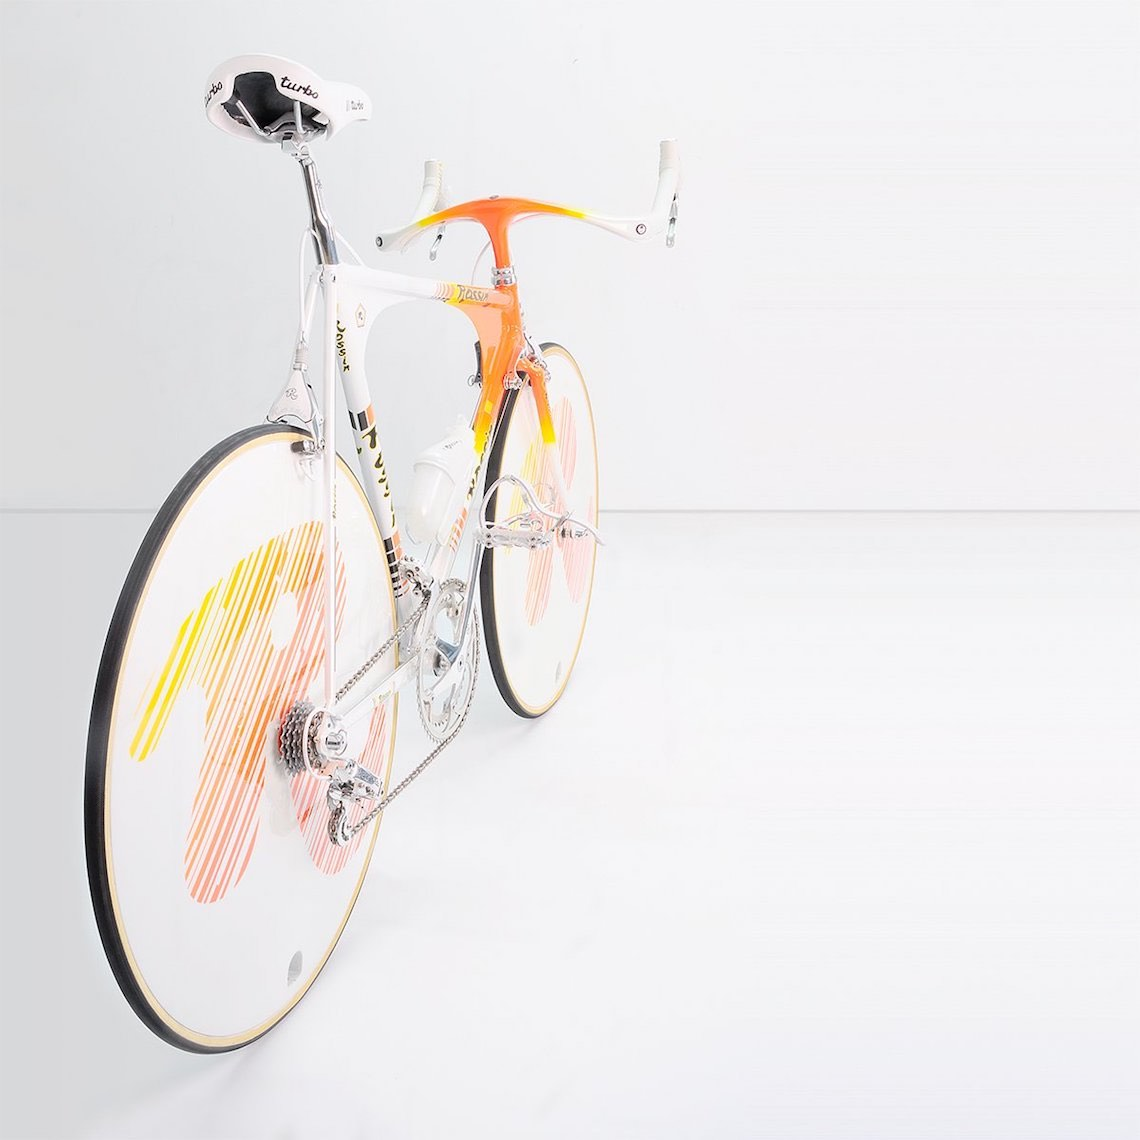 Rossin Futura CX4_Vintage_Luxury_Bicycle_10